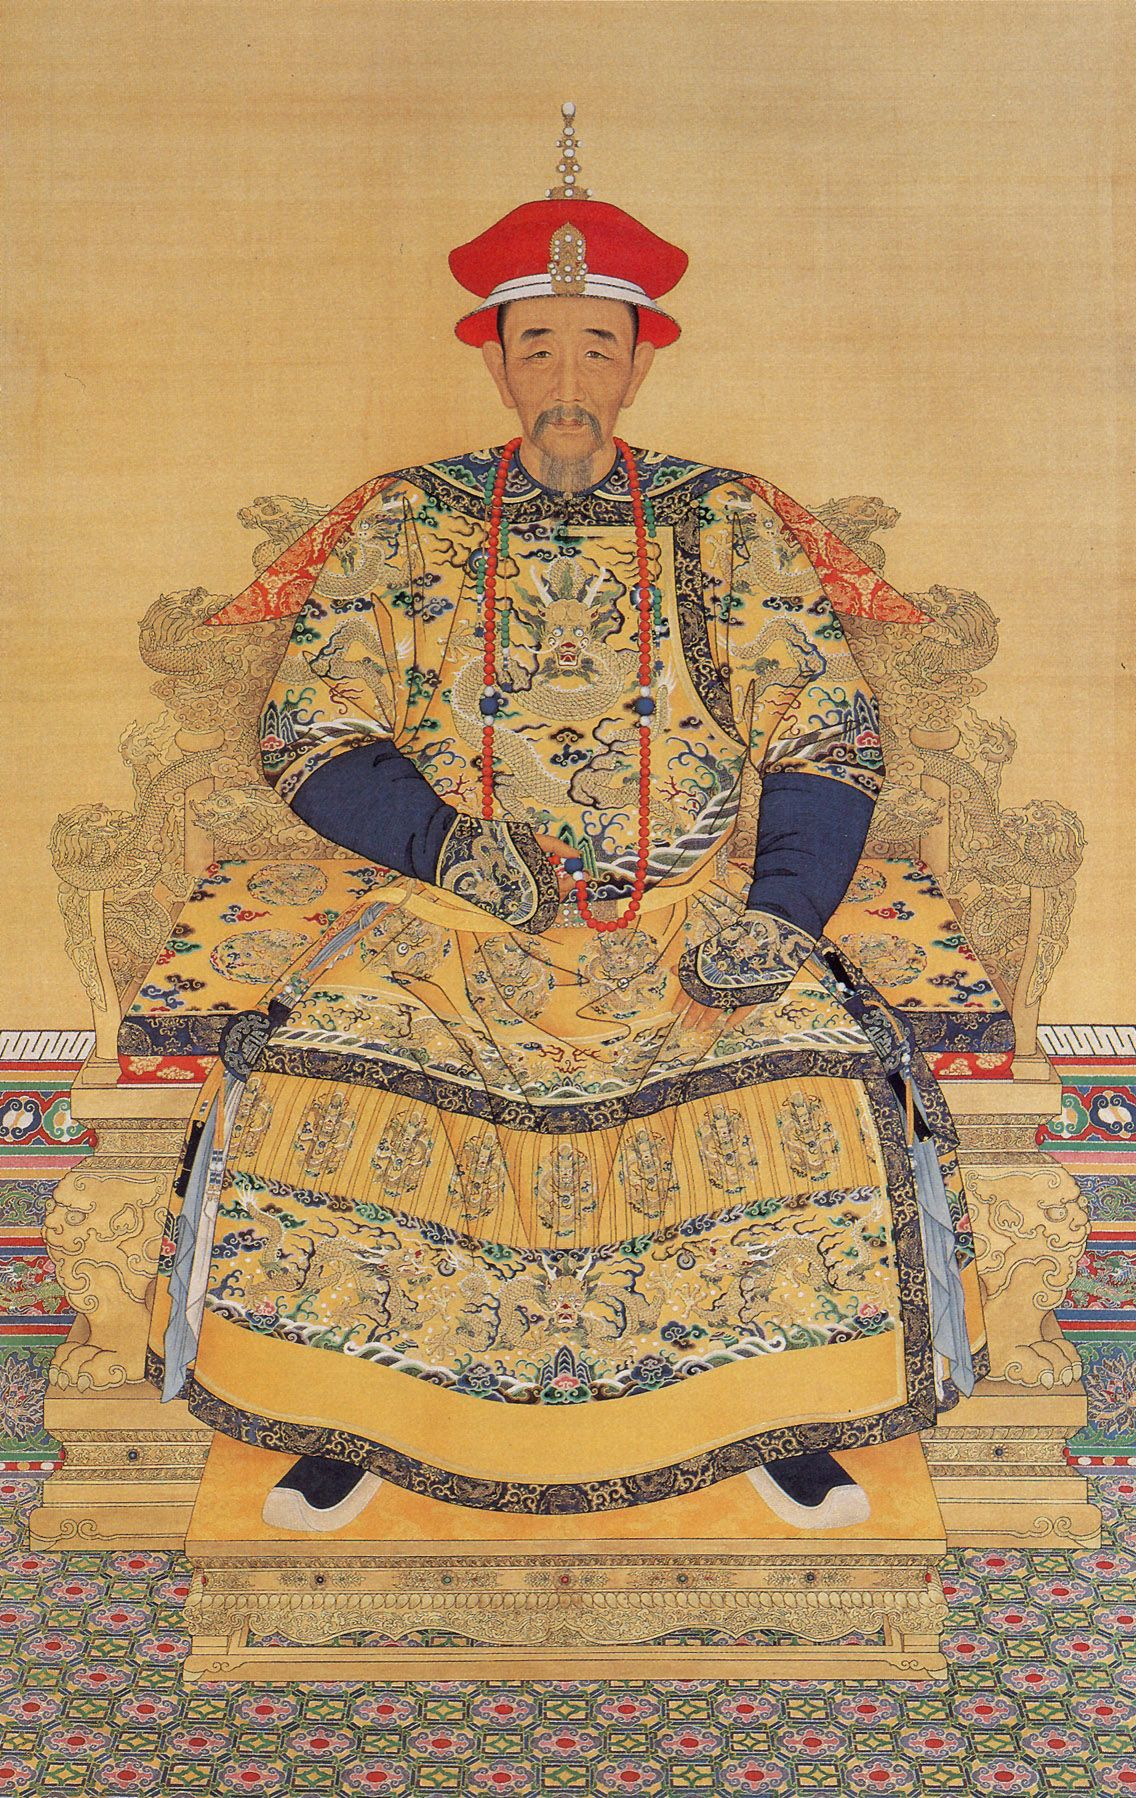 emperor kang hsi About kang hsi emperor aka kangxi emperor from portraits of historical figures of qing china portrait by artist-historian george stuart catelog name.